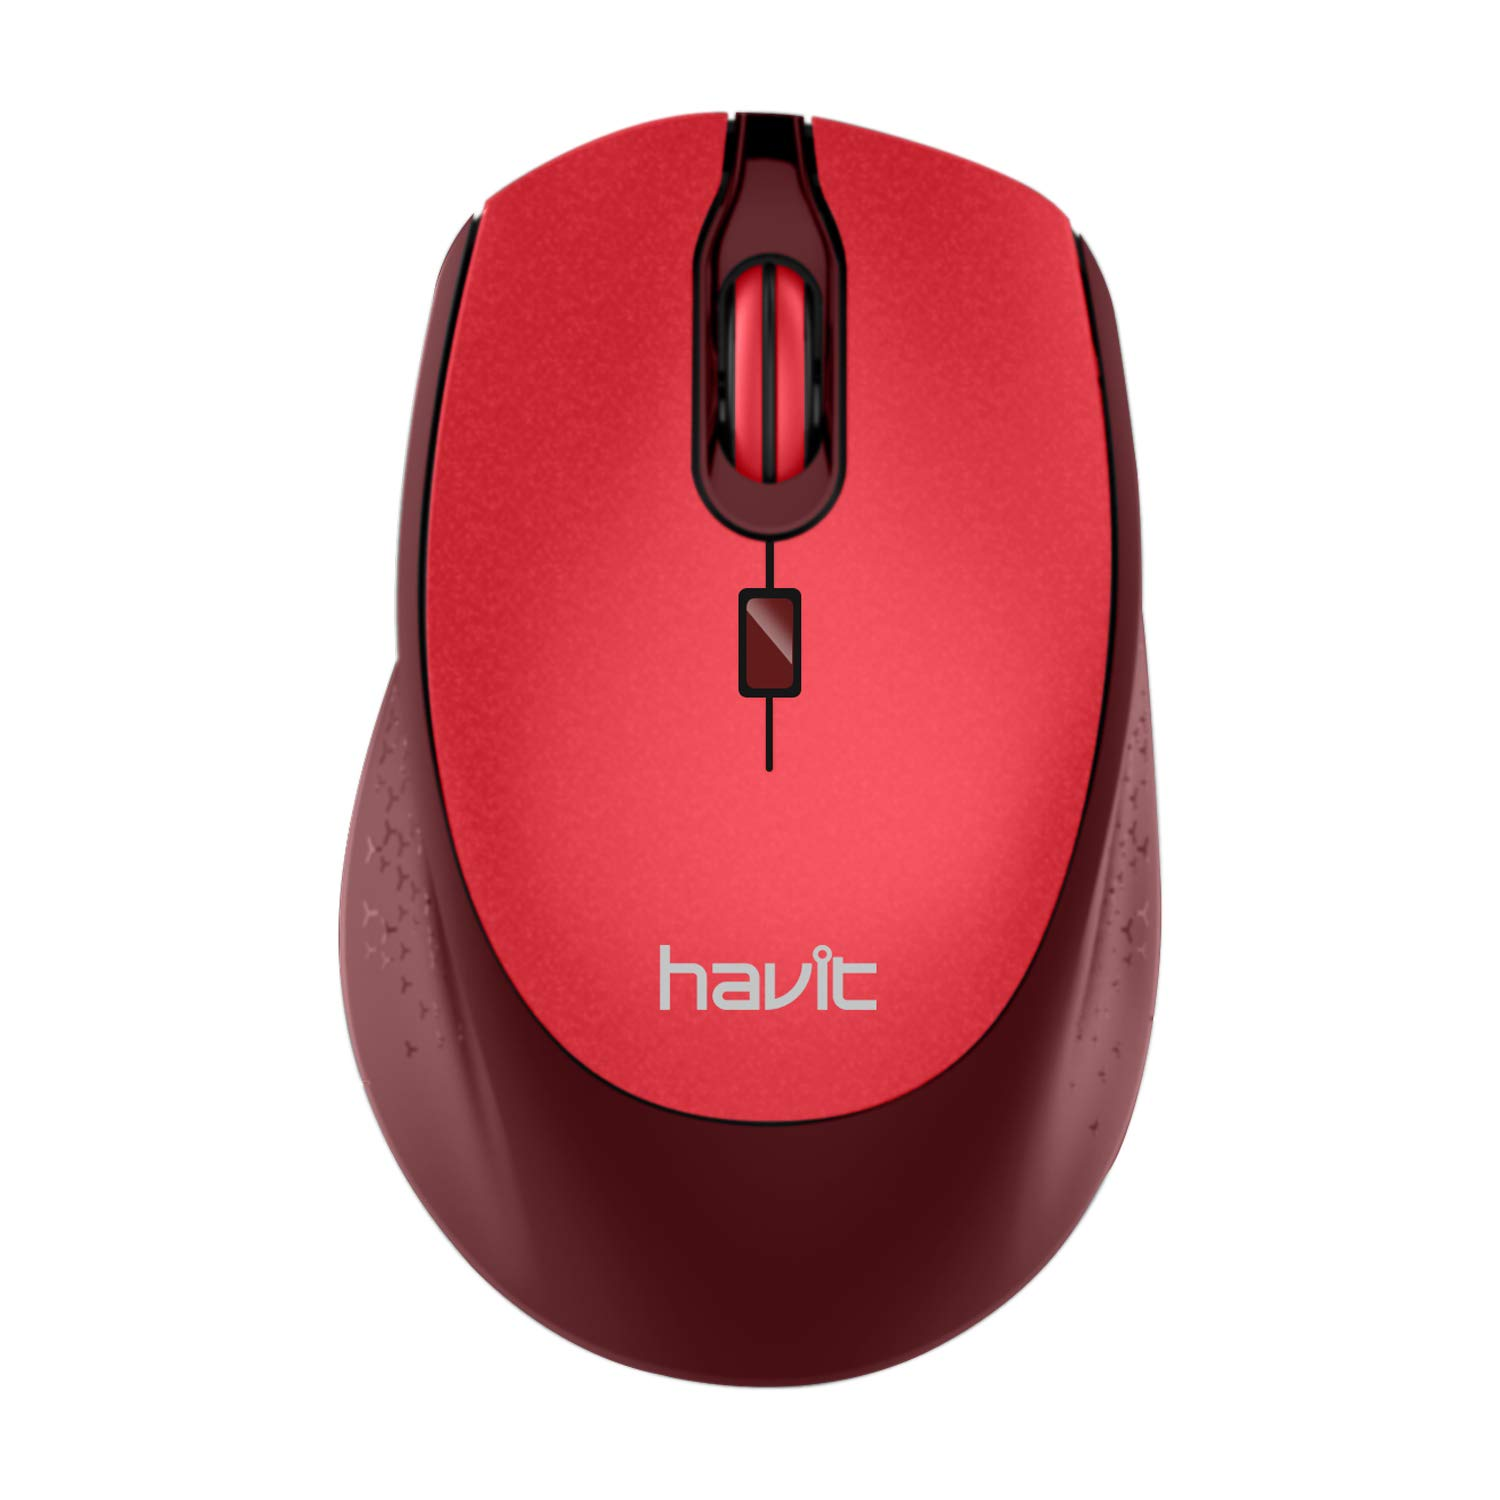 Havit 2.4G Wireless Mouse 2000DPI Optical Mini Portable Mobile with USB Receiver, 3 Adjustable DPI Levels, 4 Buttons for Notebook, PC, Laptop, Computer, MacBook (Black) HV-MS56GT black